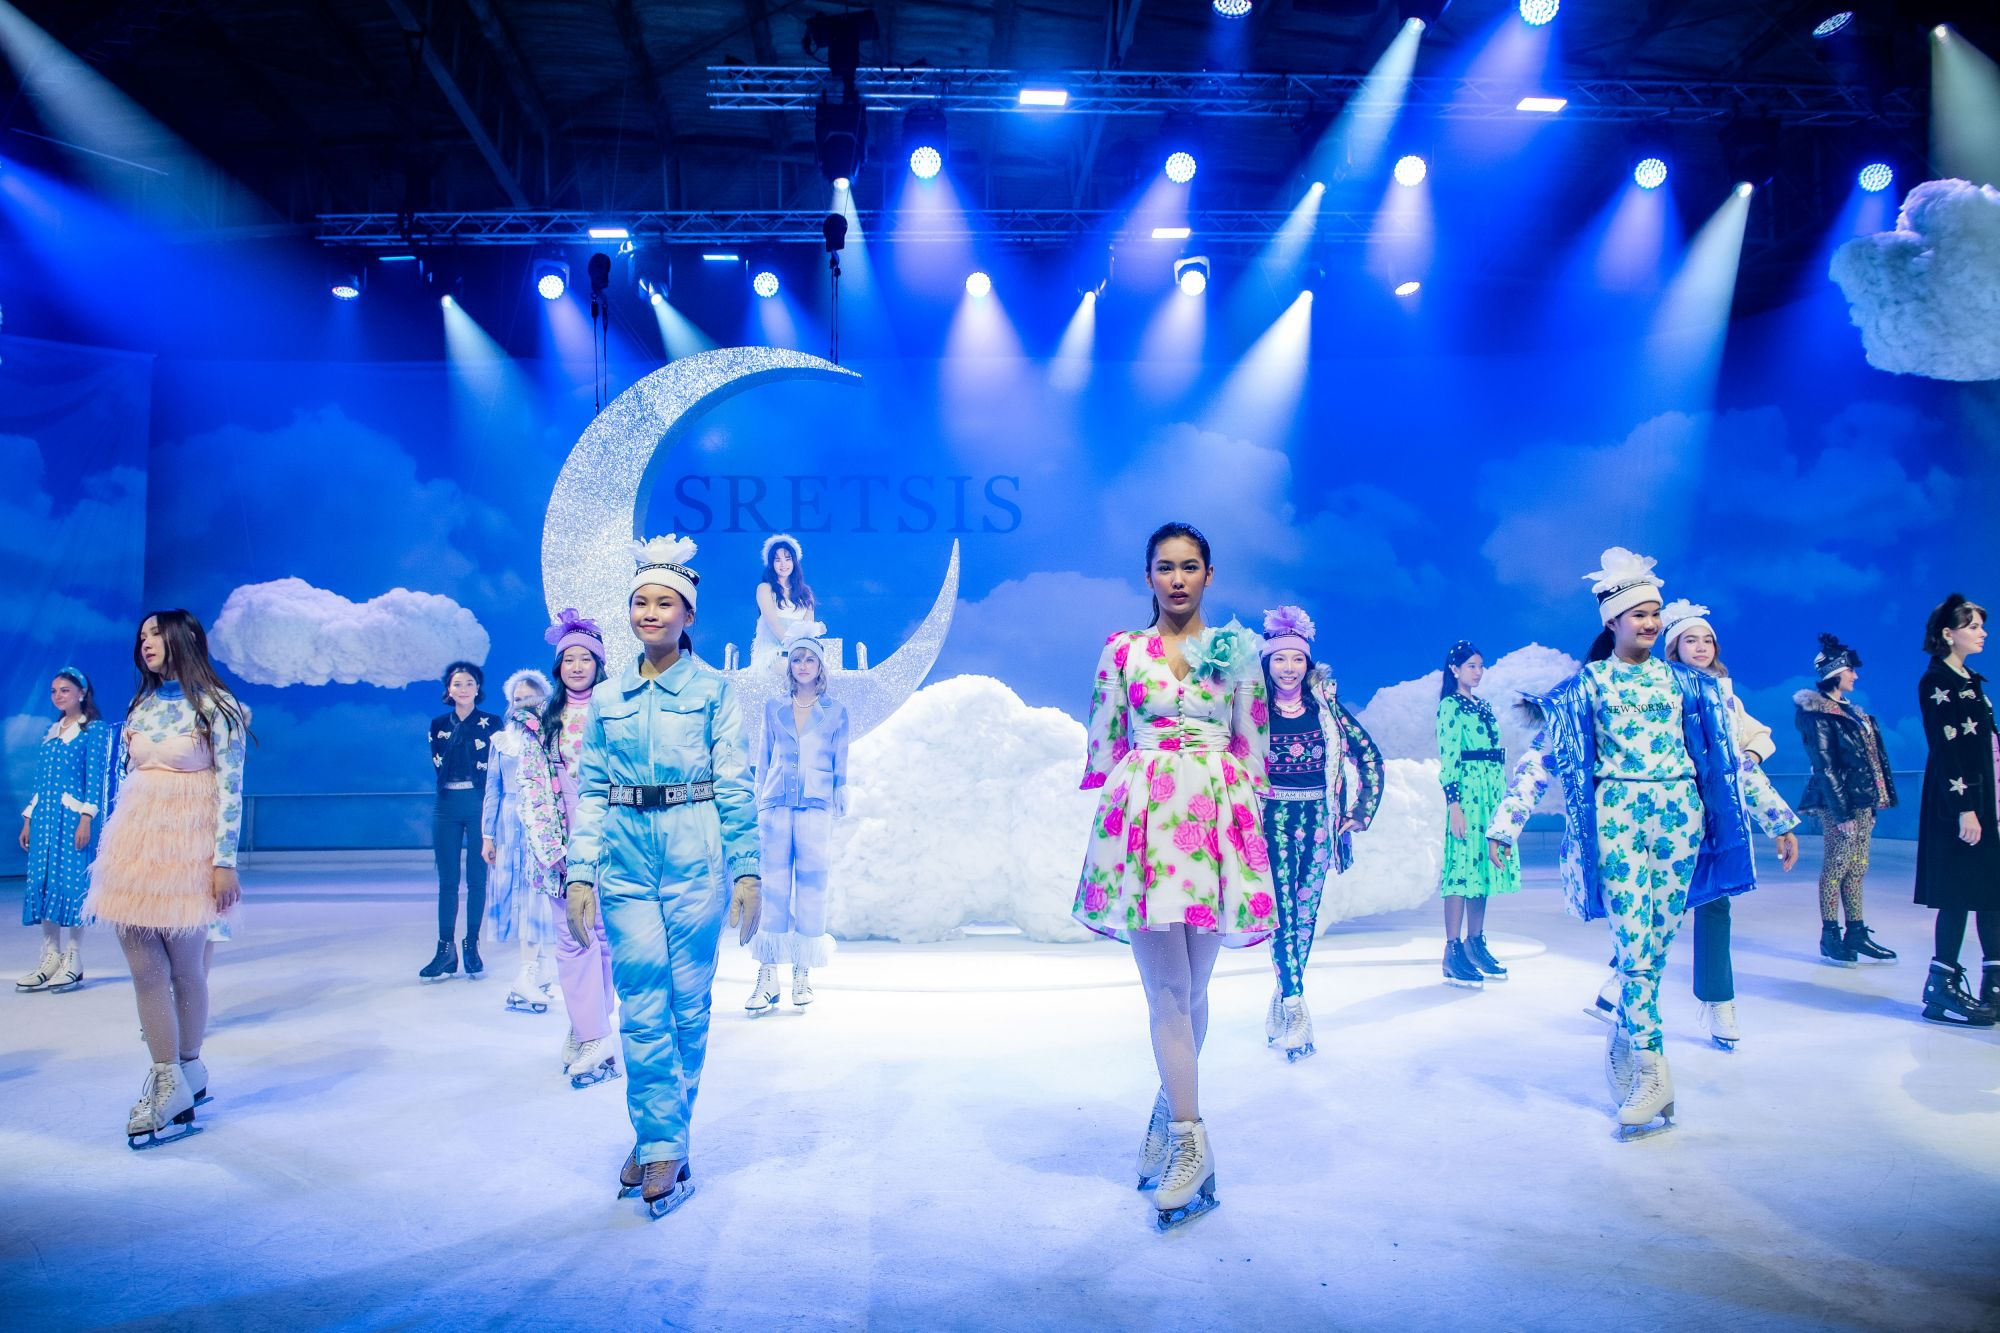 How Sretsis Animated Their Winter Wear Collection With A Show On Ice